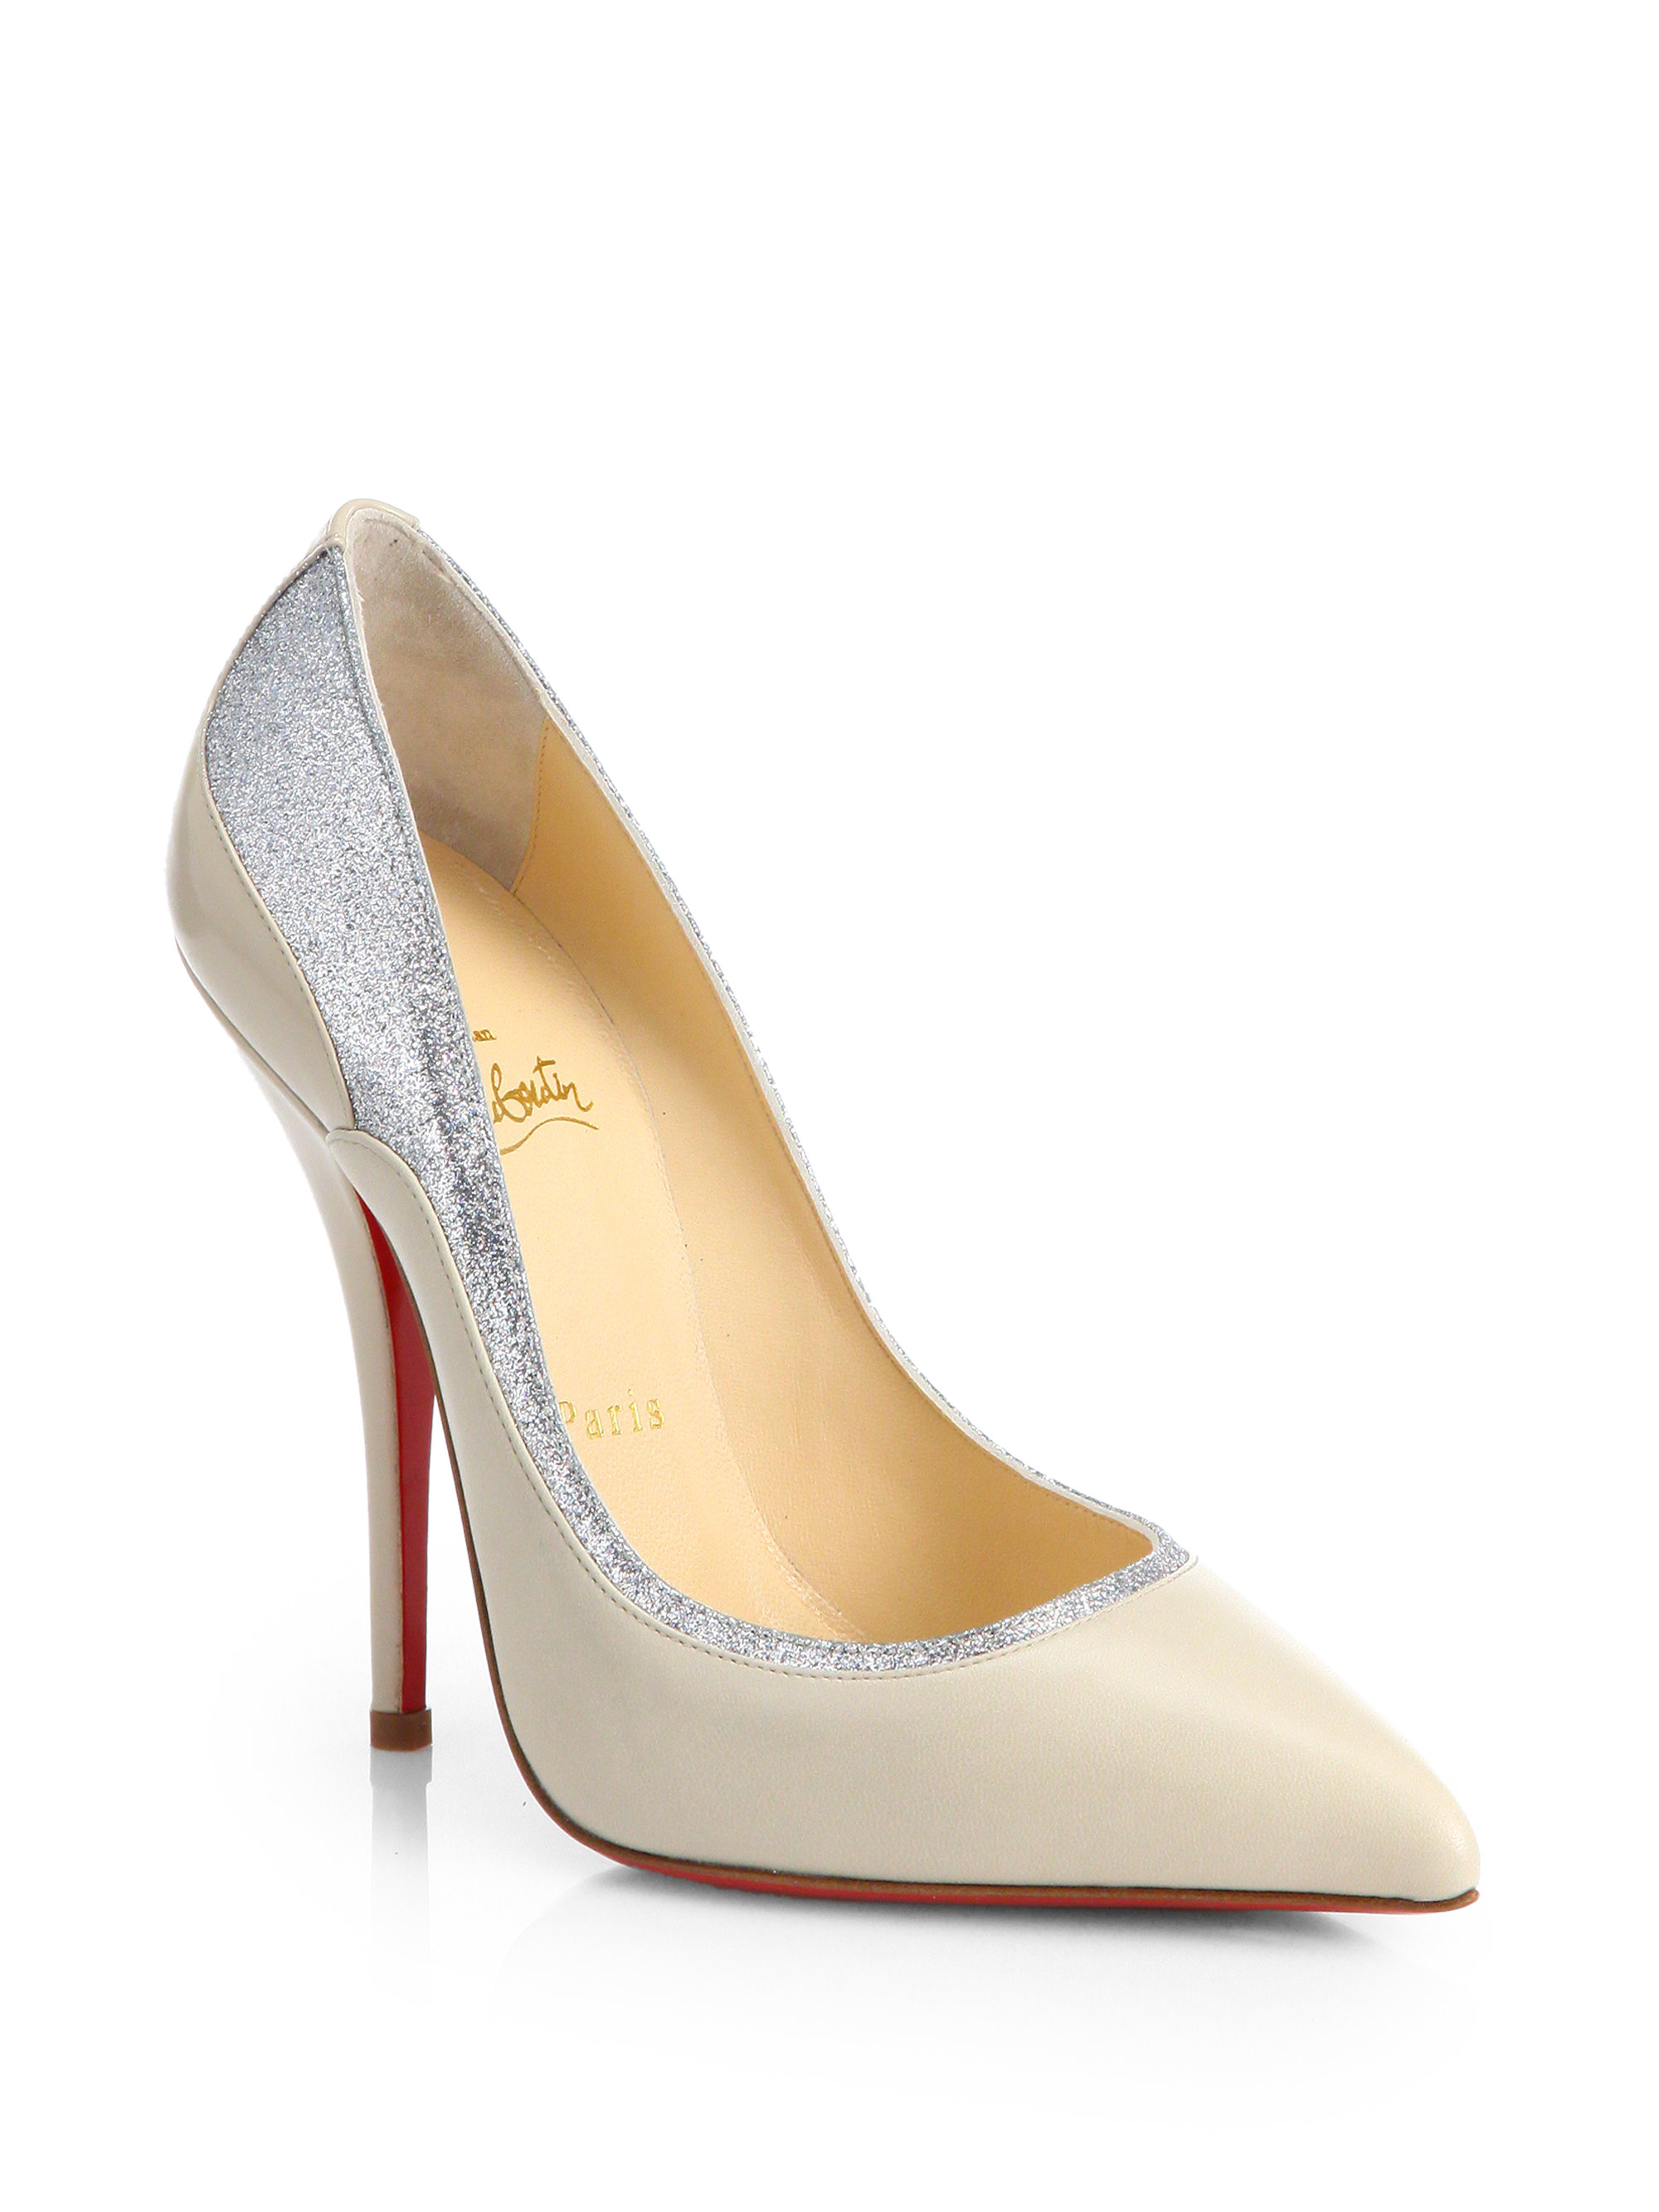 christian louboutin shoe prices - christian louboutin slingback pumps Silver-tone leather cut out ...